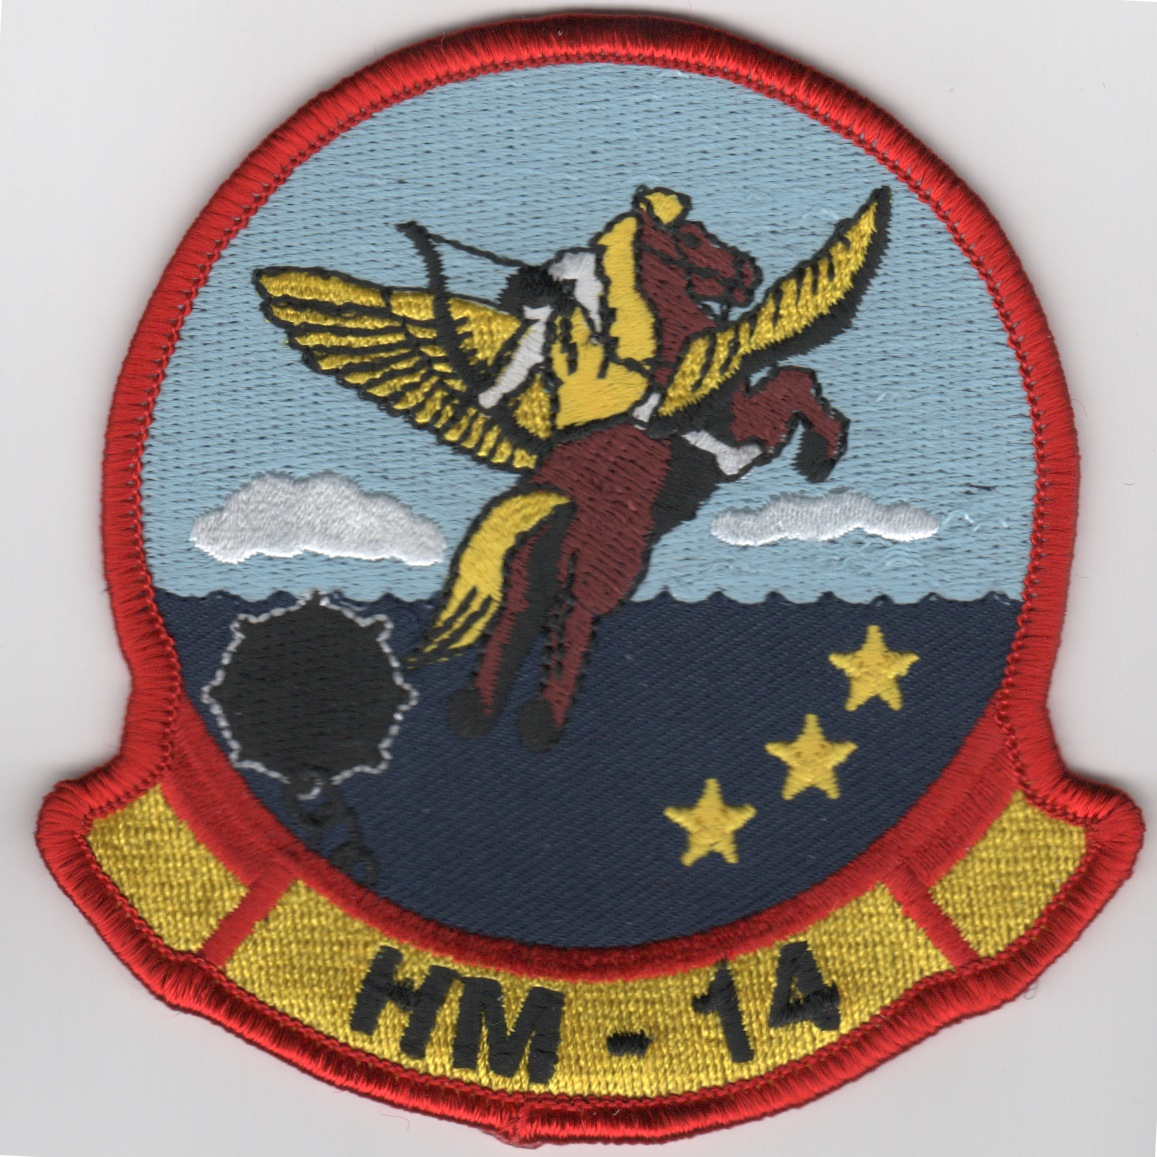 HM-14 Squadron Patch (Med/Red Border)